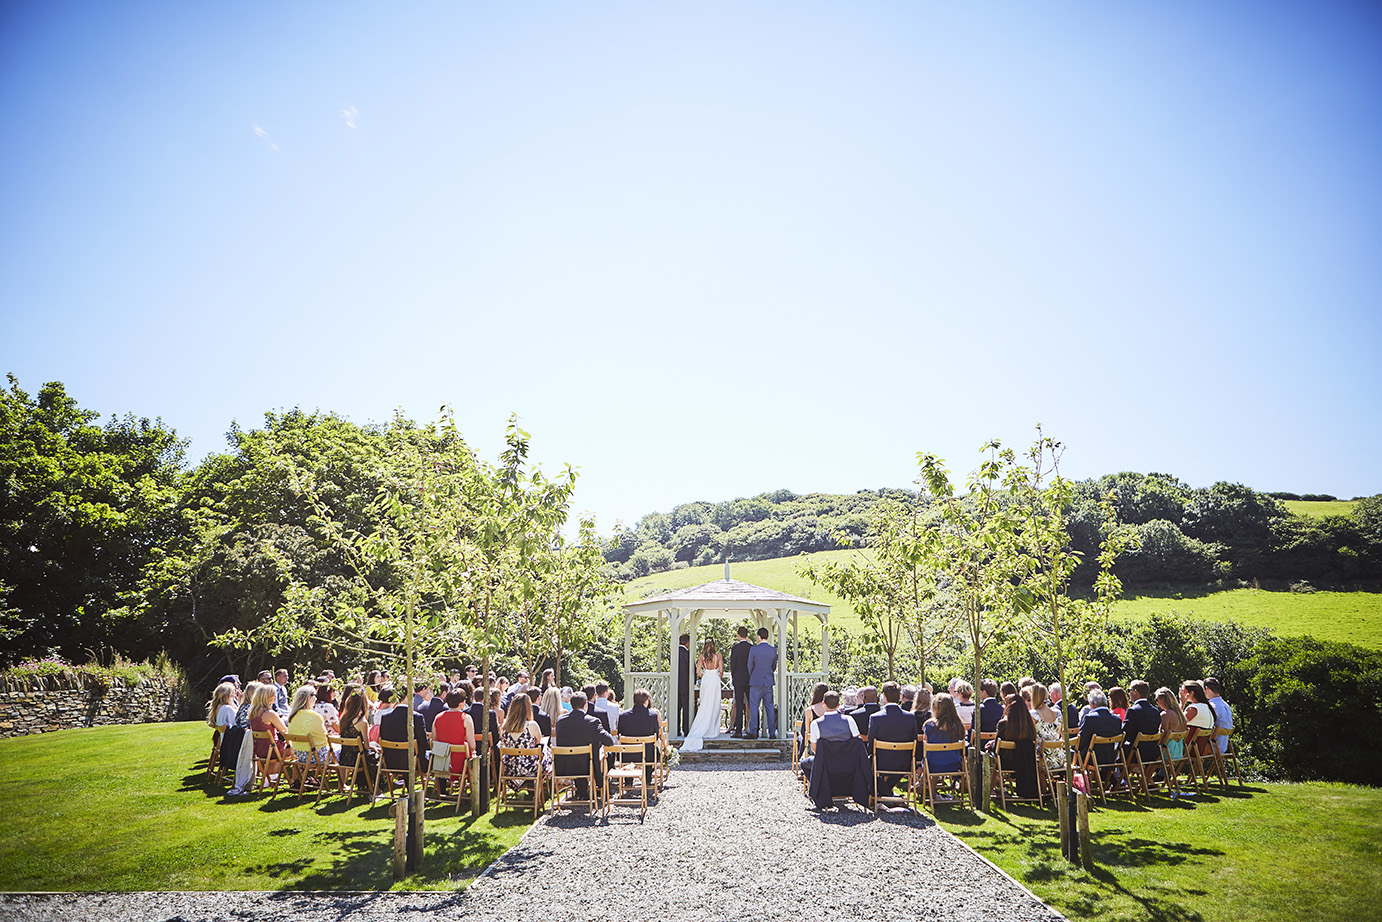 Real wedding at Pengenna Manor in Cornwall wedding venue Julia & Adam 01.jpg